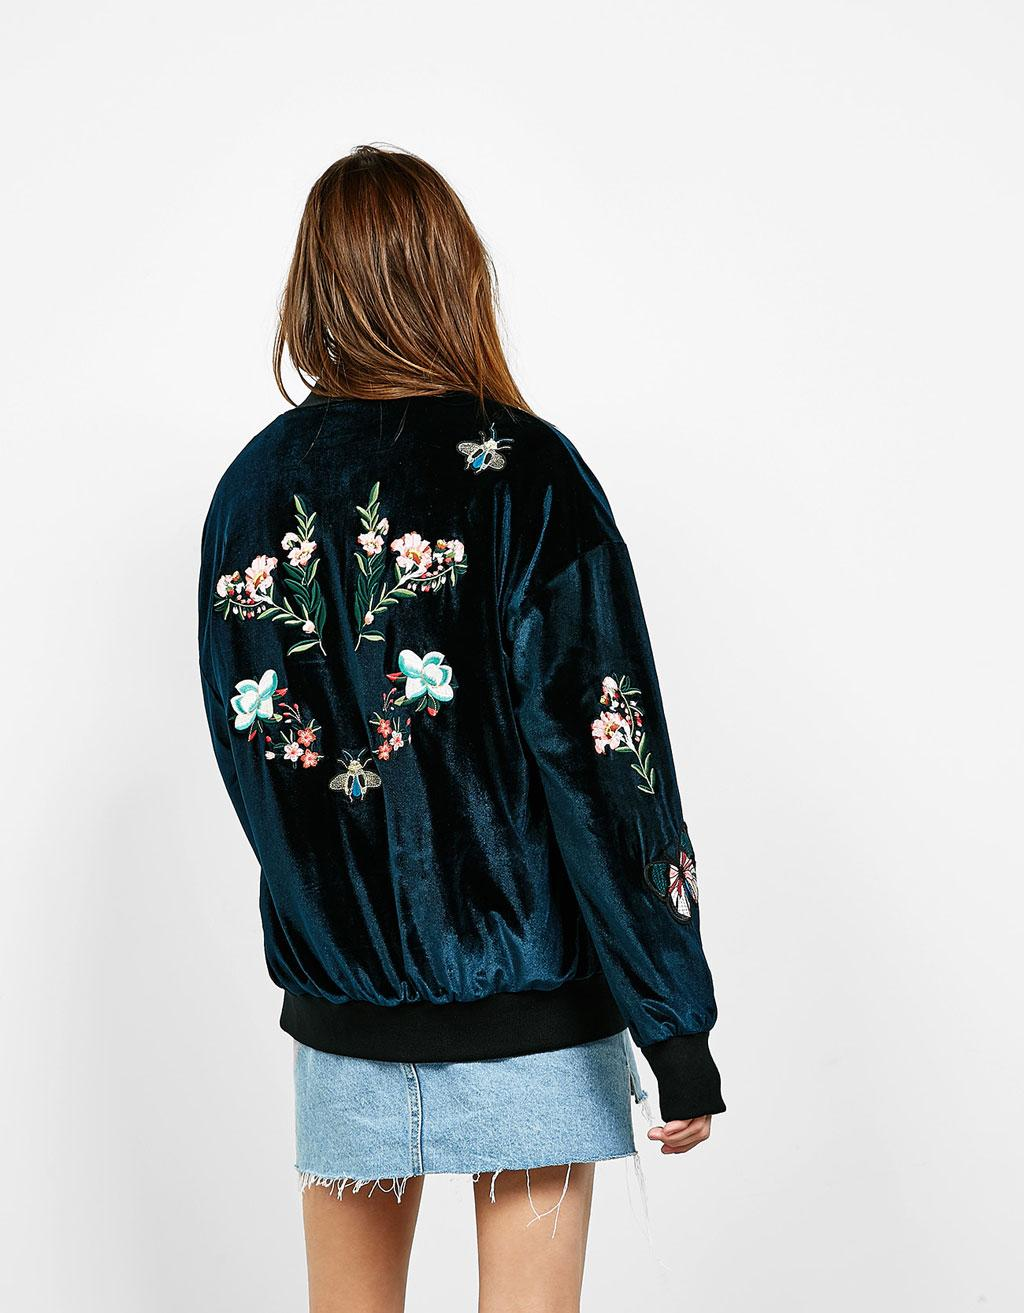 Extremely beautiful bomber jacket from Bershka, with colorful and symmetrical floral decoration. This jacket is perfect to turn almost every look from normal to stylish in just a second!